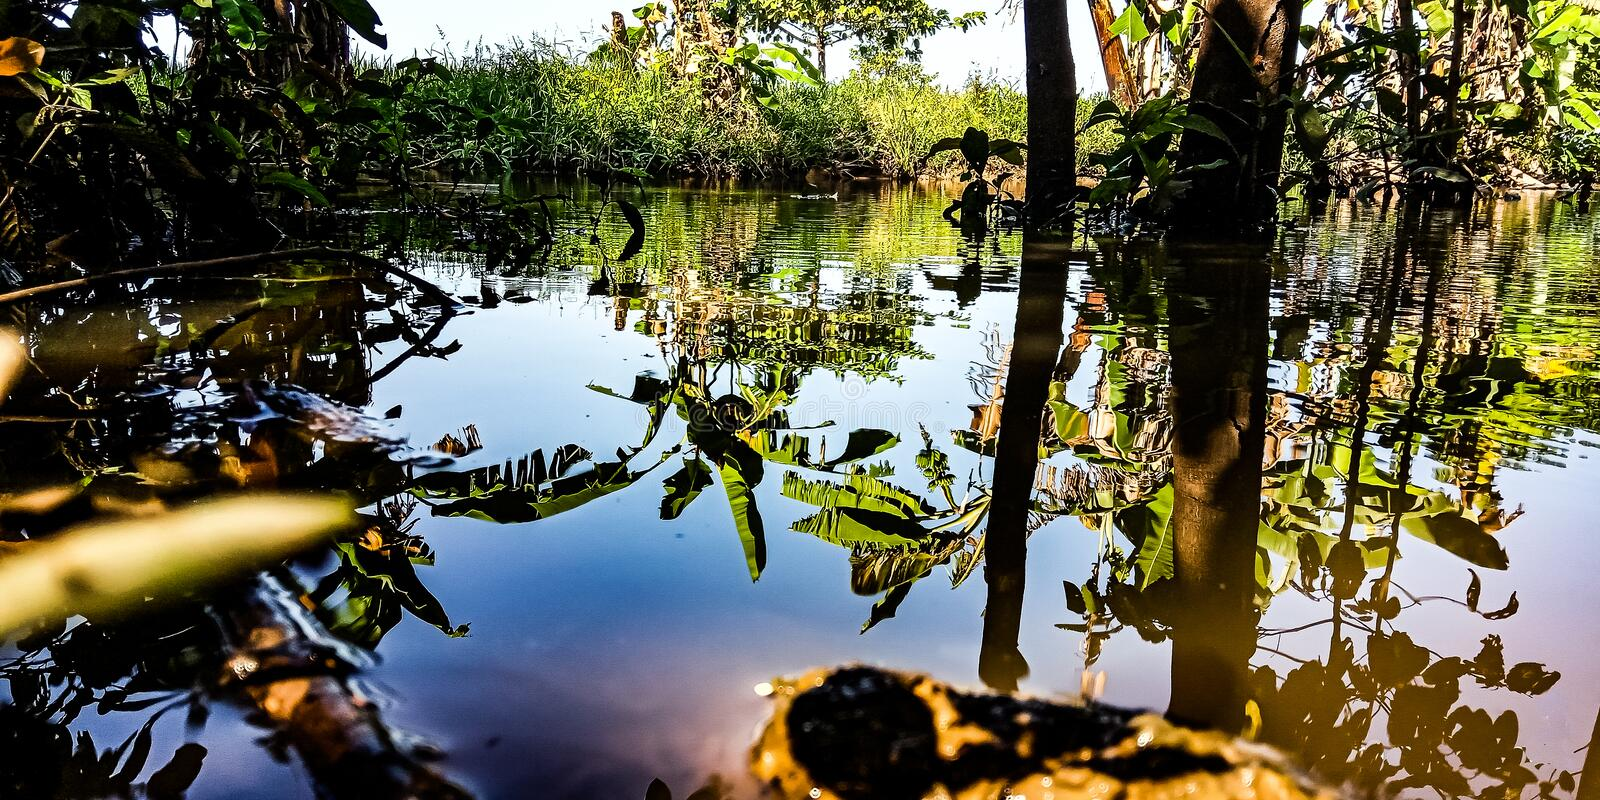 The water reflection stock images